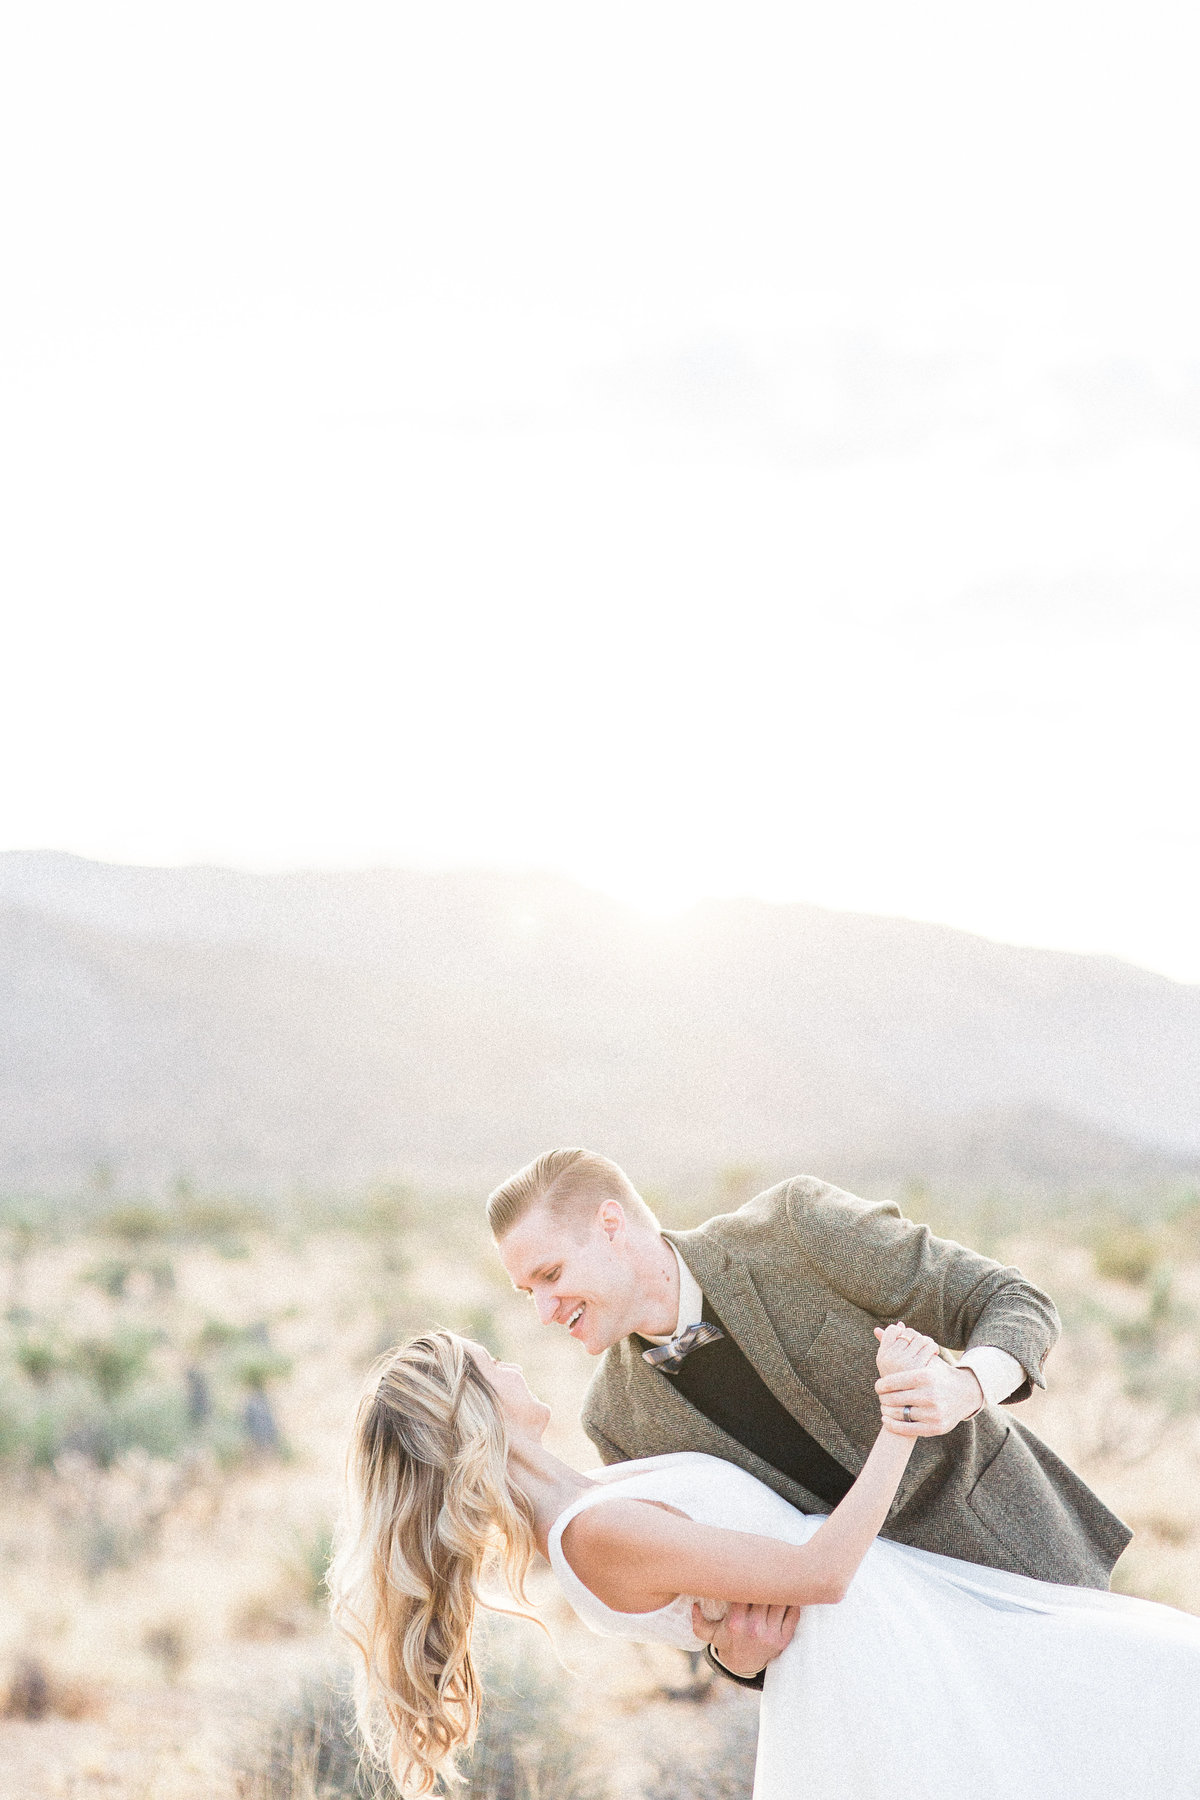 C. elyse photos Joshua Tree elopement